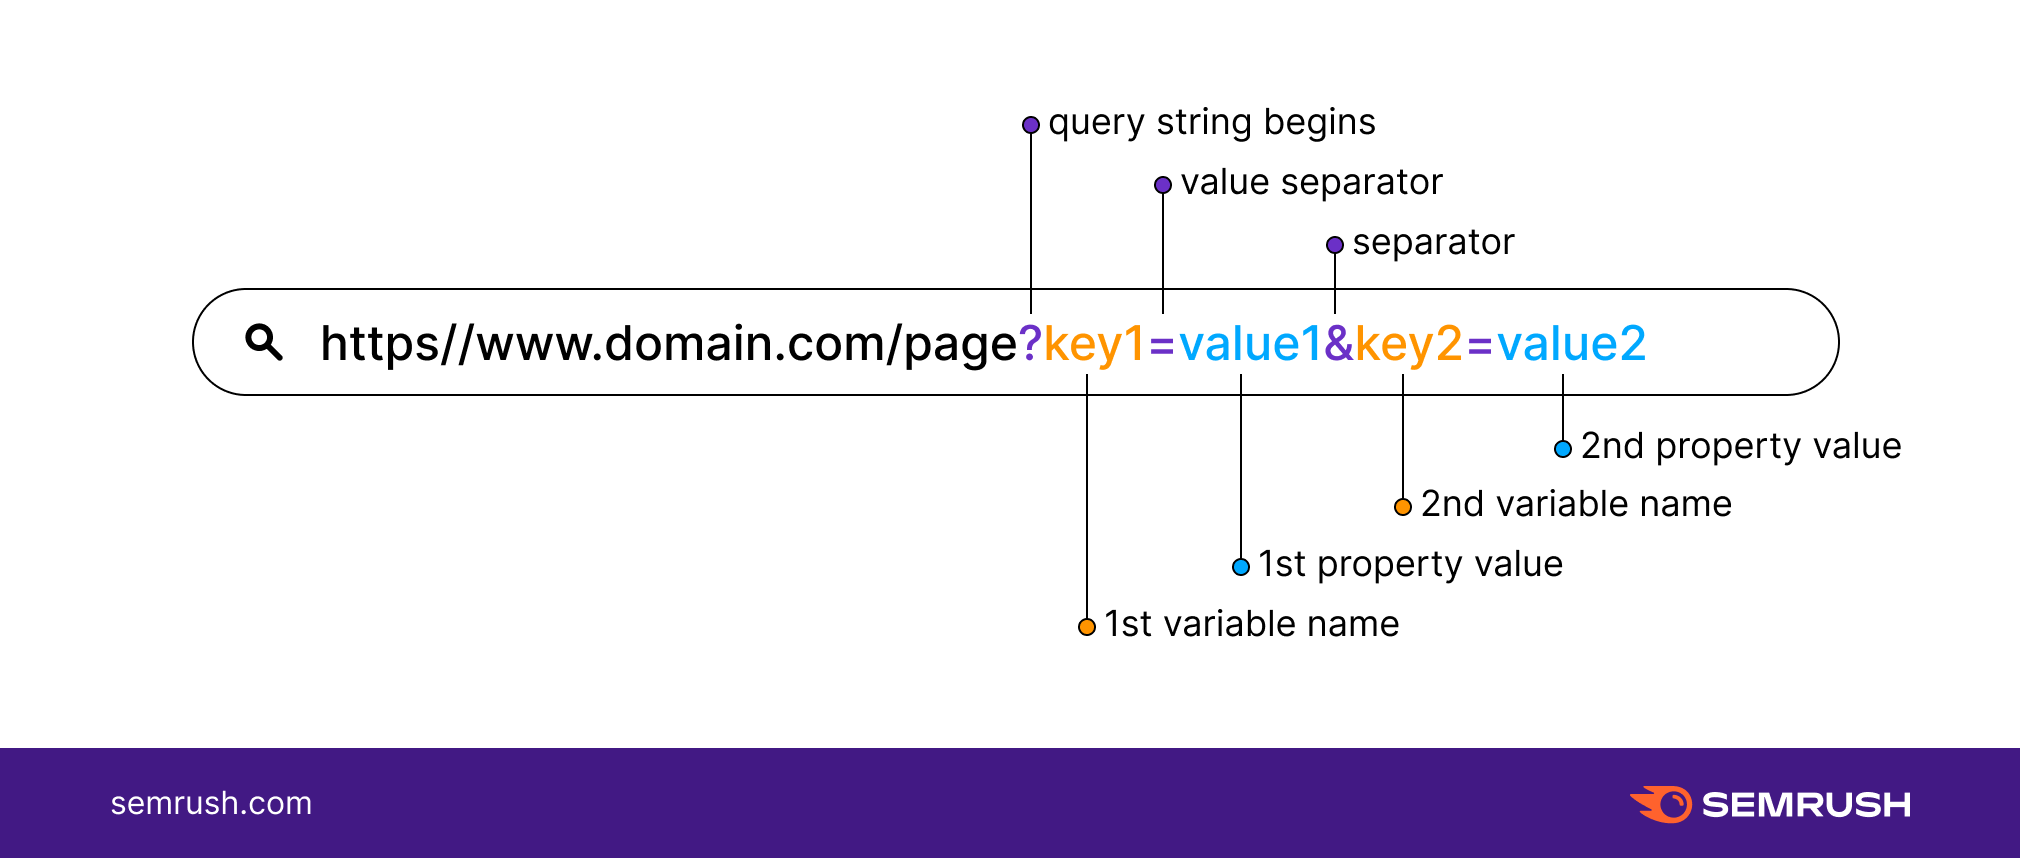 Guide to URL Parameters 2